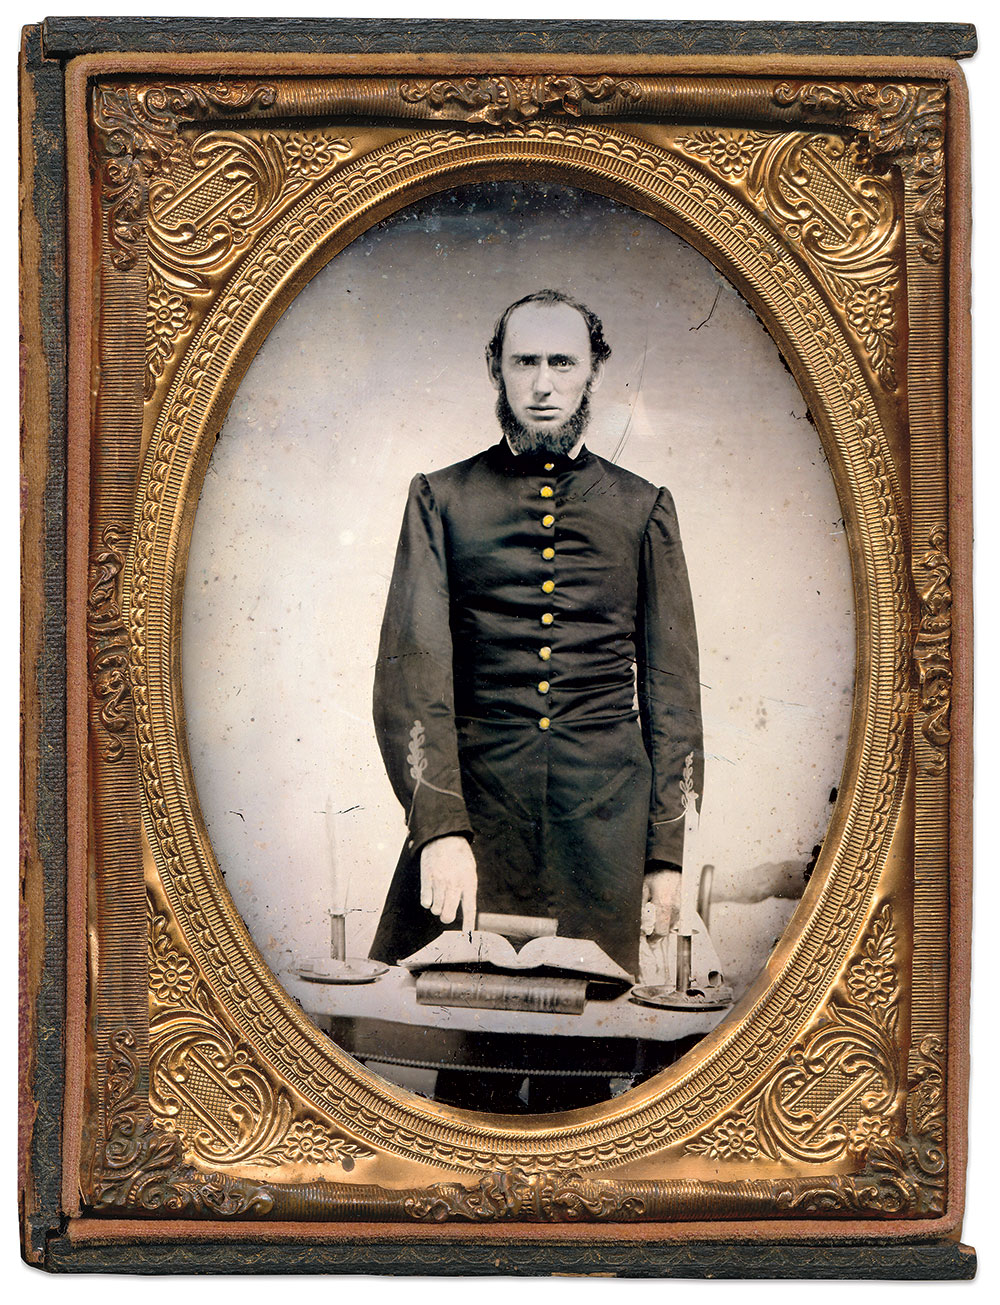 Quarter-plate ambrotype by an anonymous photographer attributed to Richmond, Va. Dan Schwab Collection.